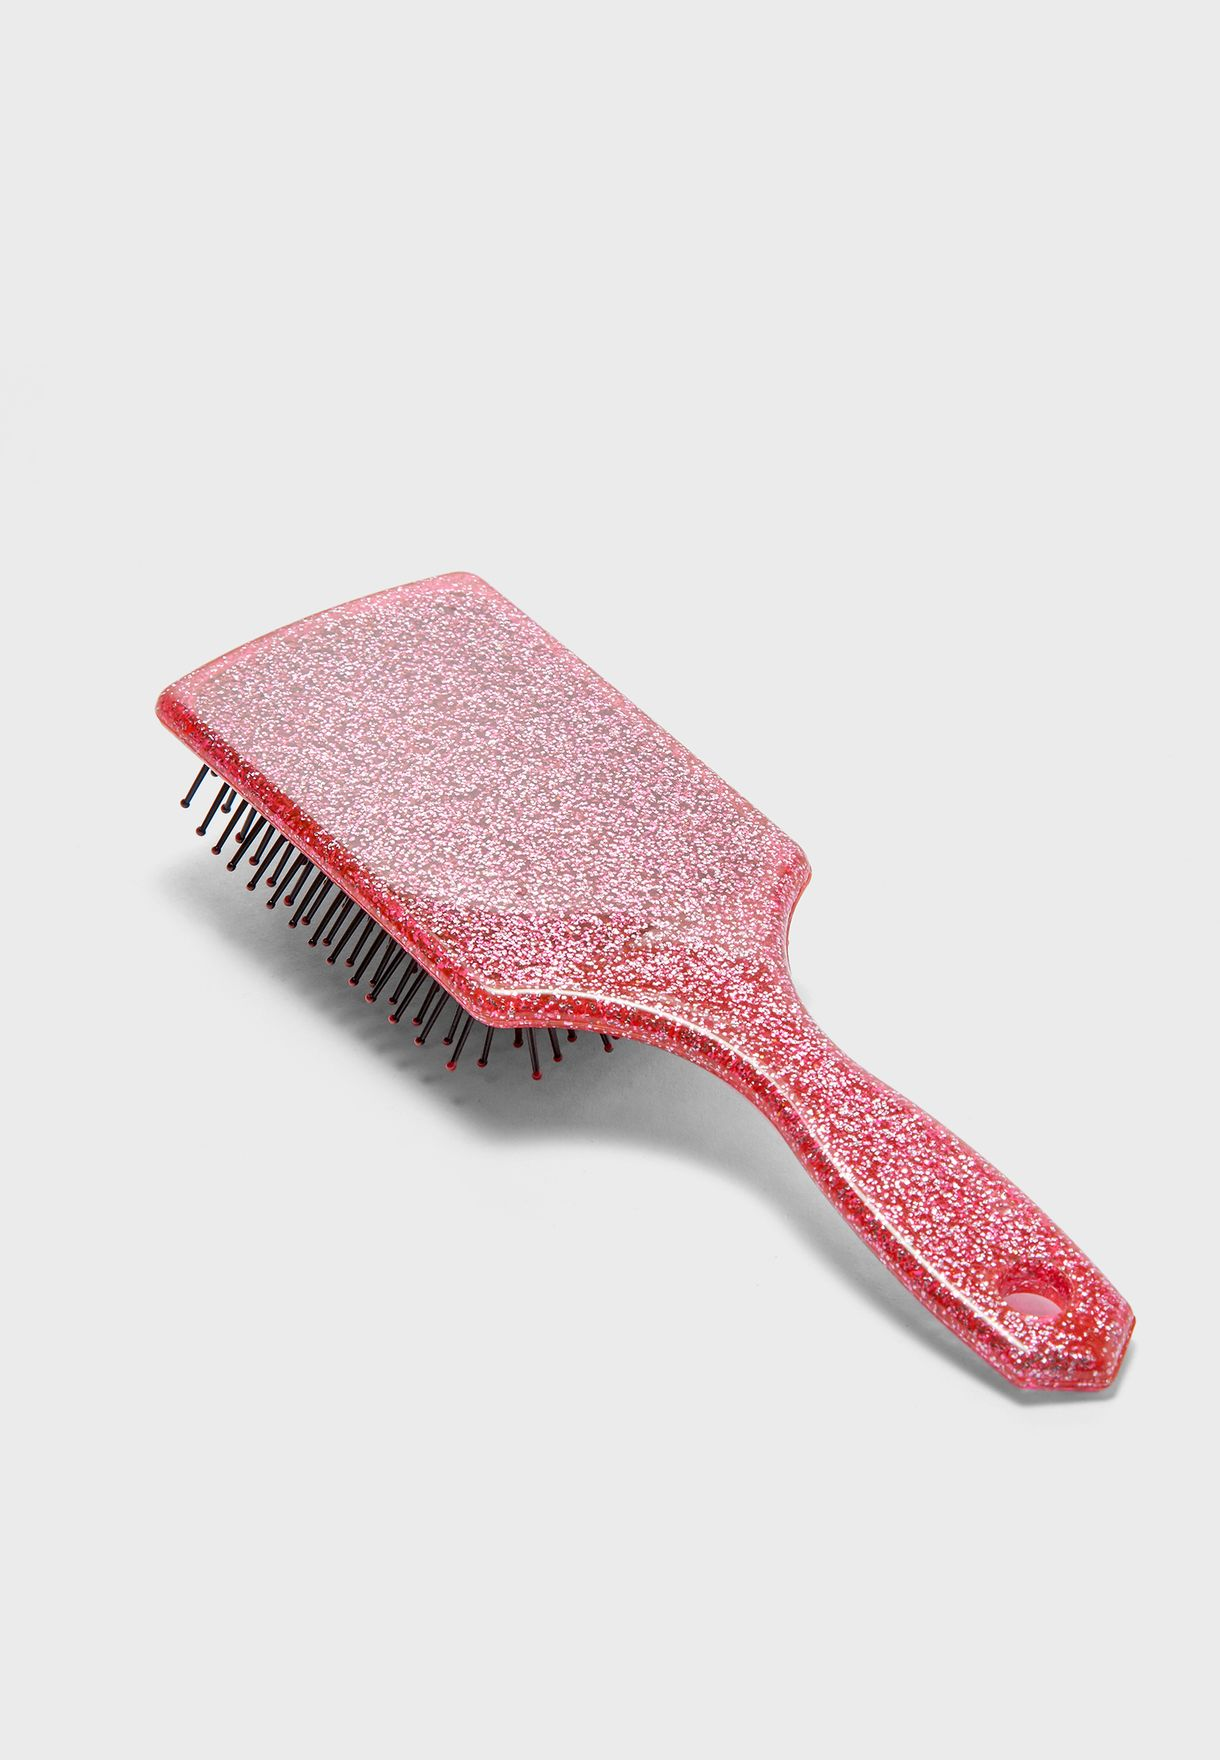 Pink Paddle Brush